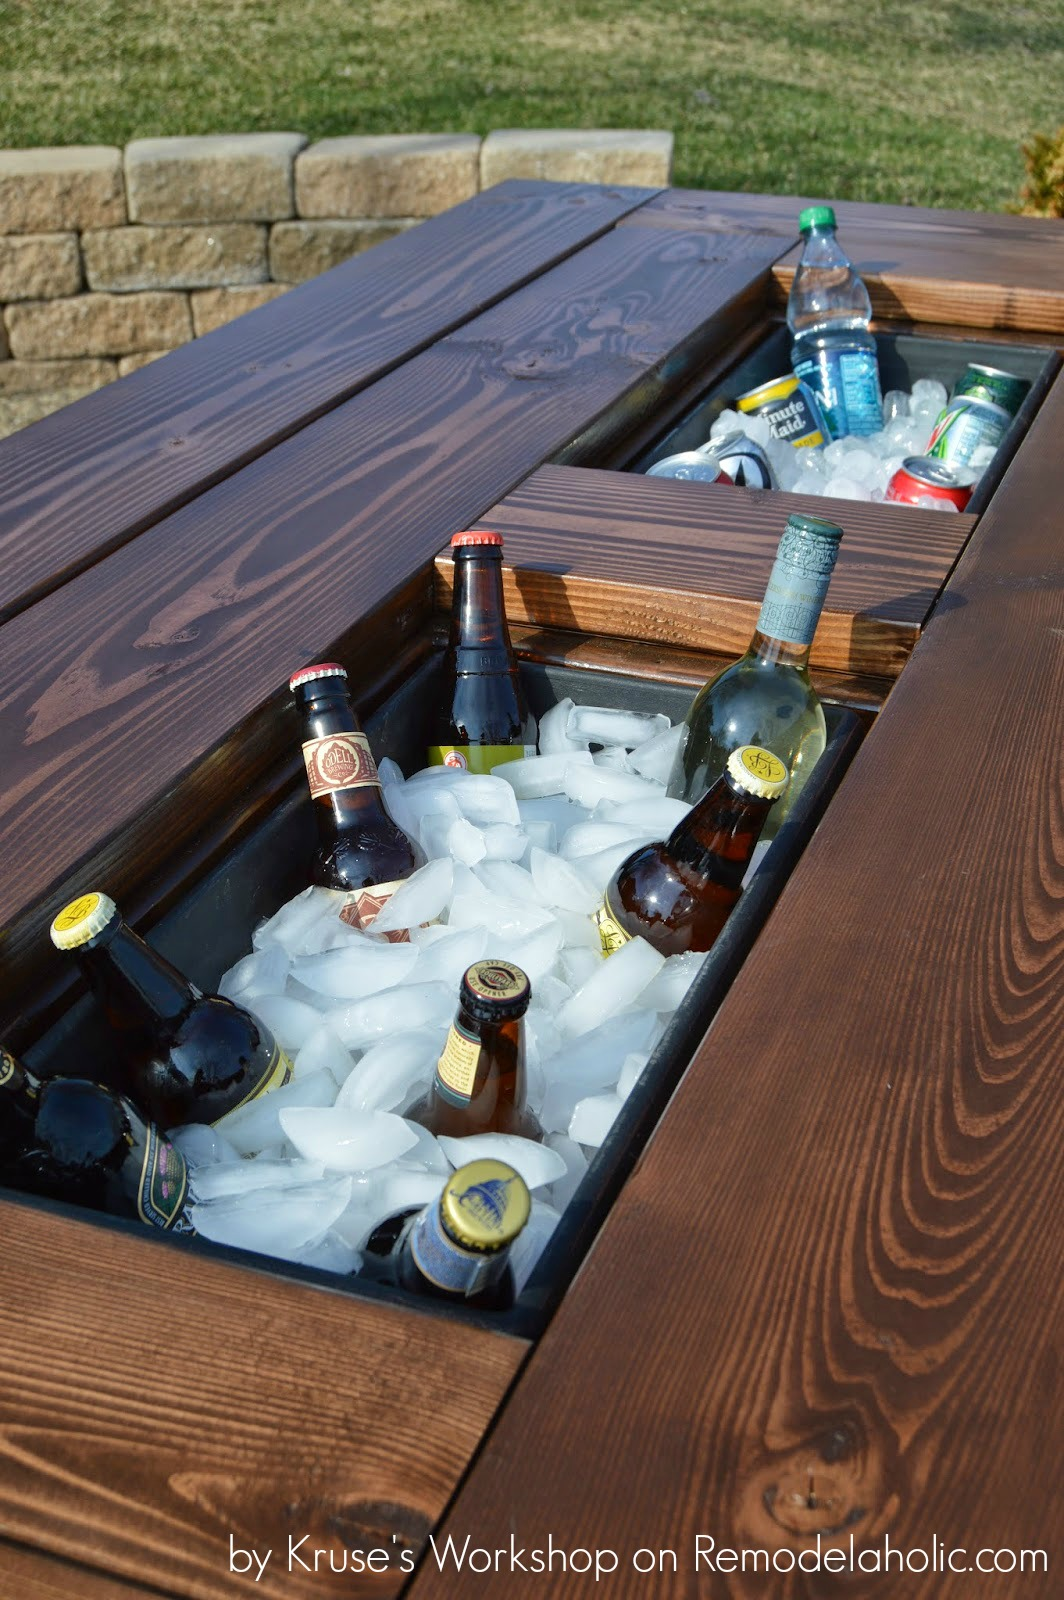 build table picture unforgettable to wood ideas how composite height out patio a pallets of with bar building built